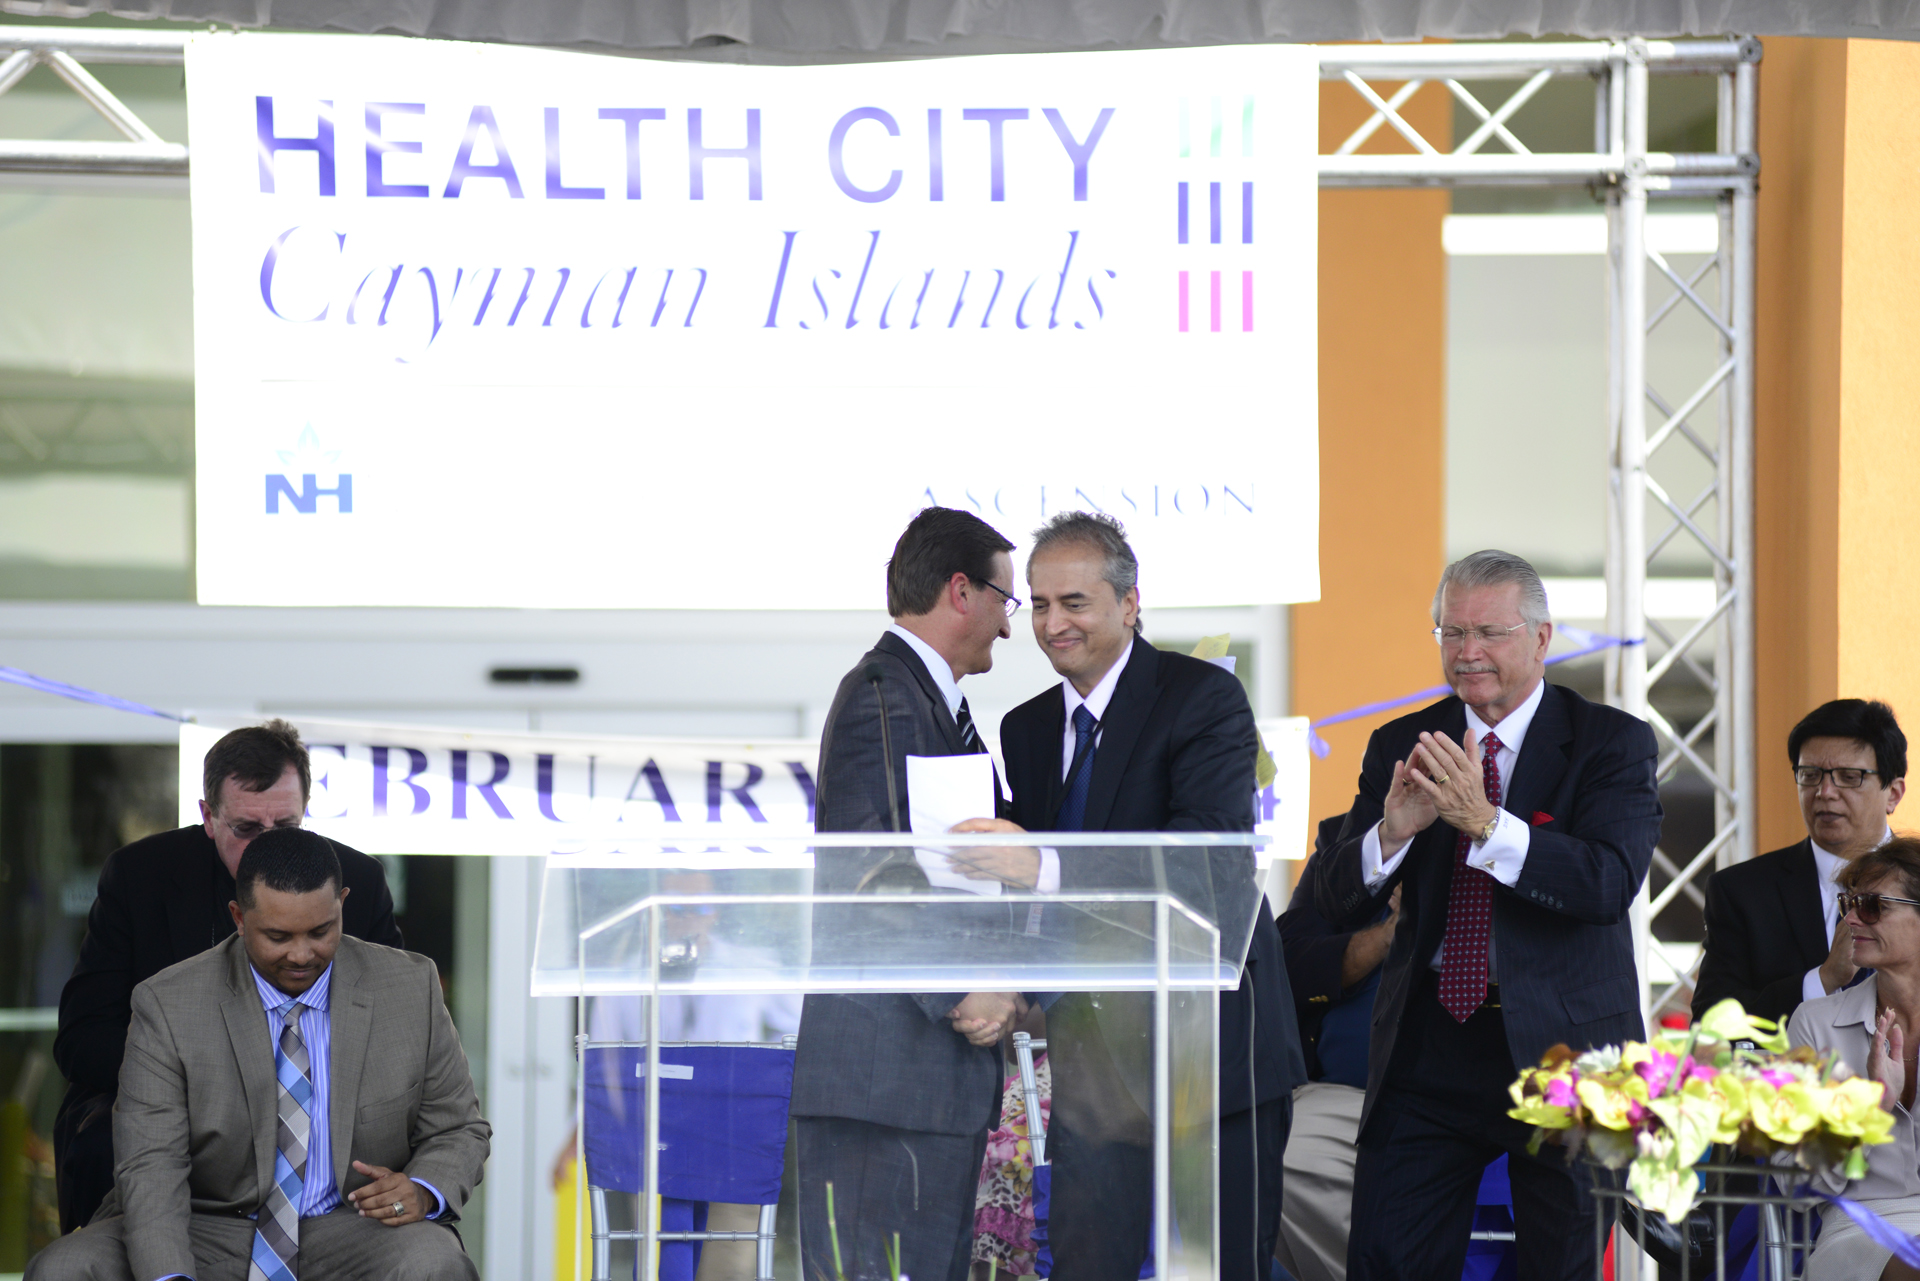 Gene Thompson and Dr Shetty at Health City Cayman Islands Grand Opening